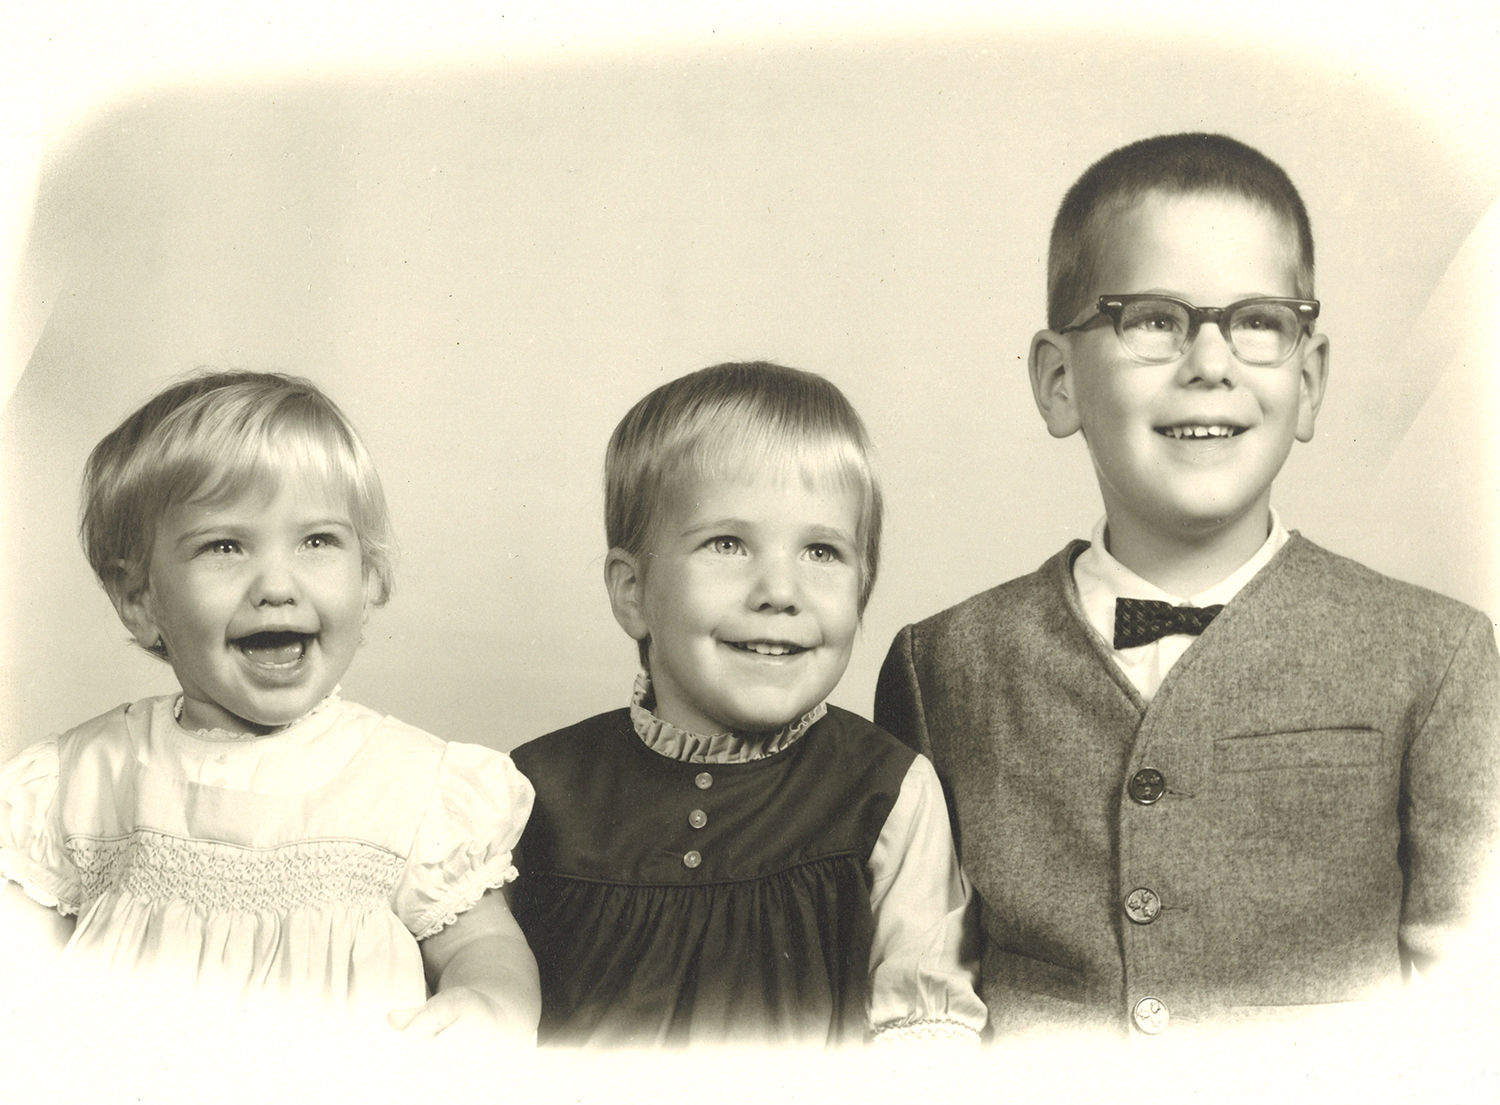 Advances in recognizing inherited diseases like galactosemia allowed Christine Winey (on left) to grow up happy and healthy with her siblings Karen, in the middle, and Mark, on the right. Courtesy photo